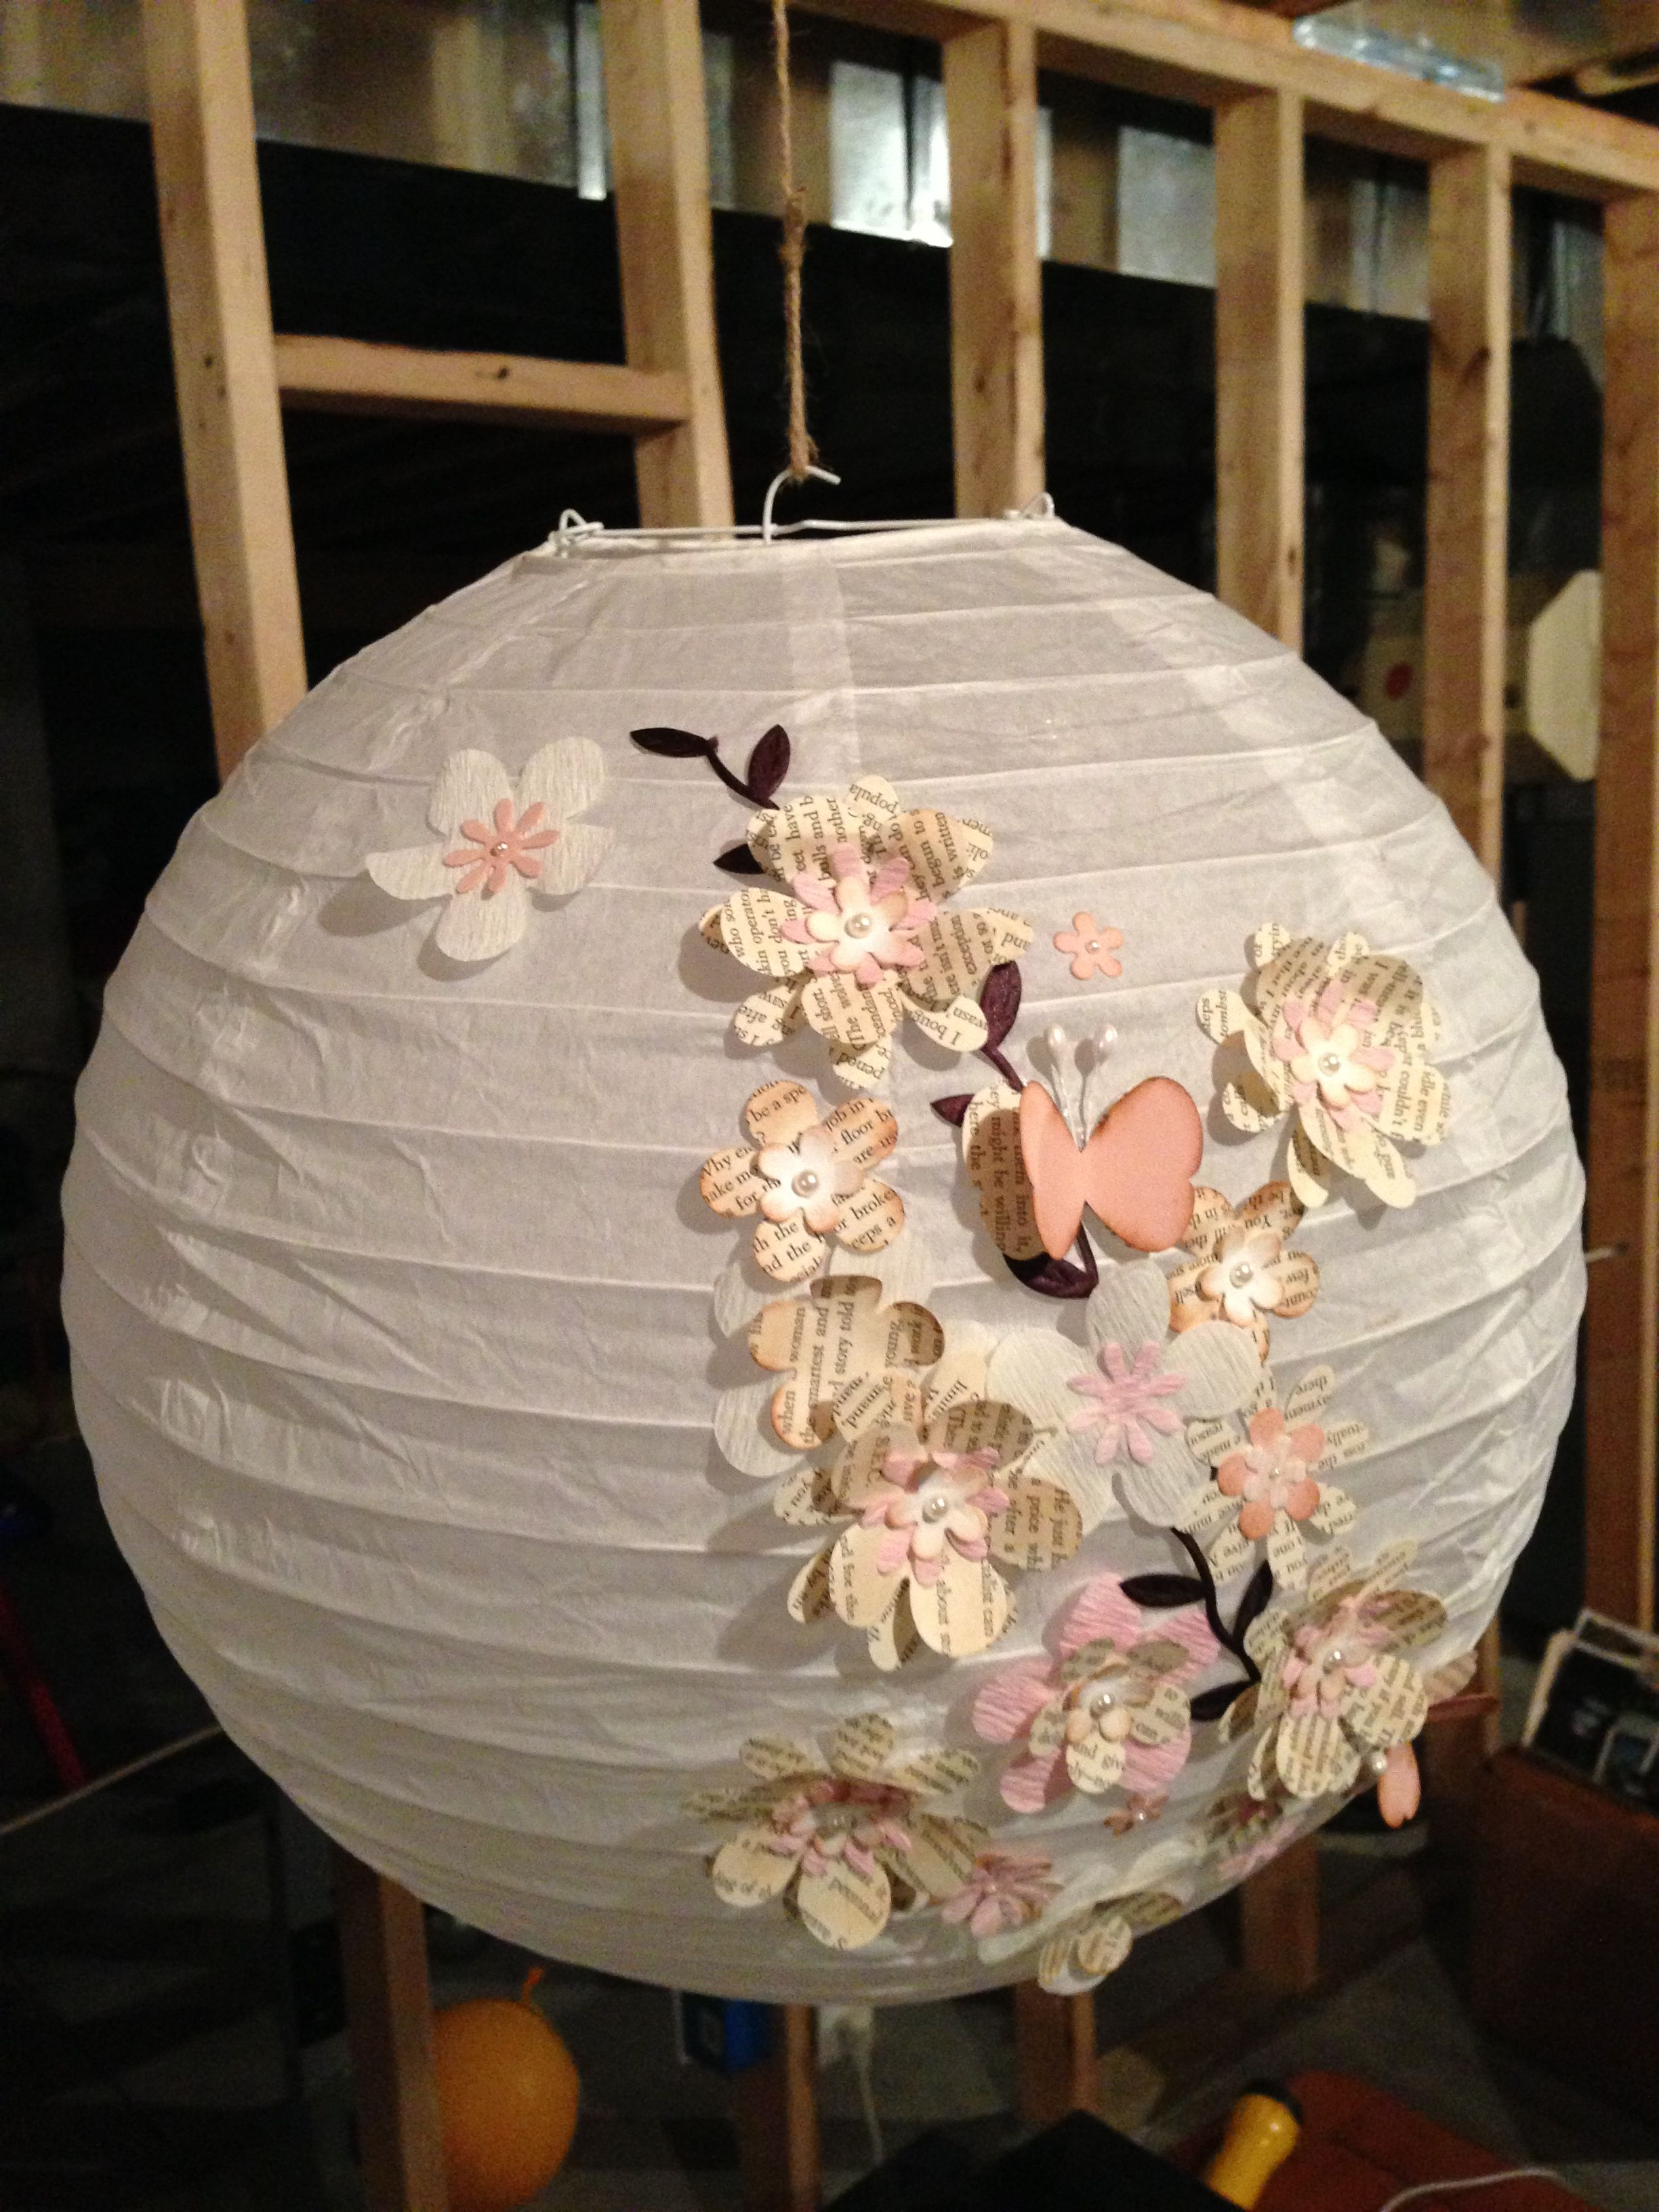 Here are my lanterns that will hang from the ceiling of my tent; at night they will glow!